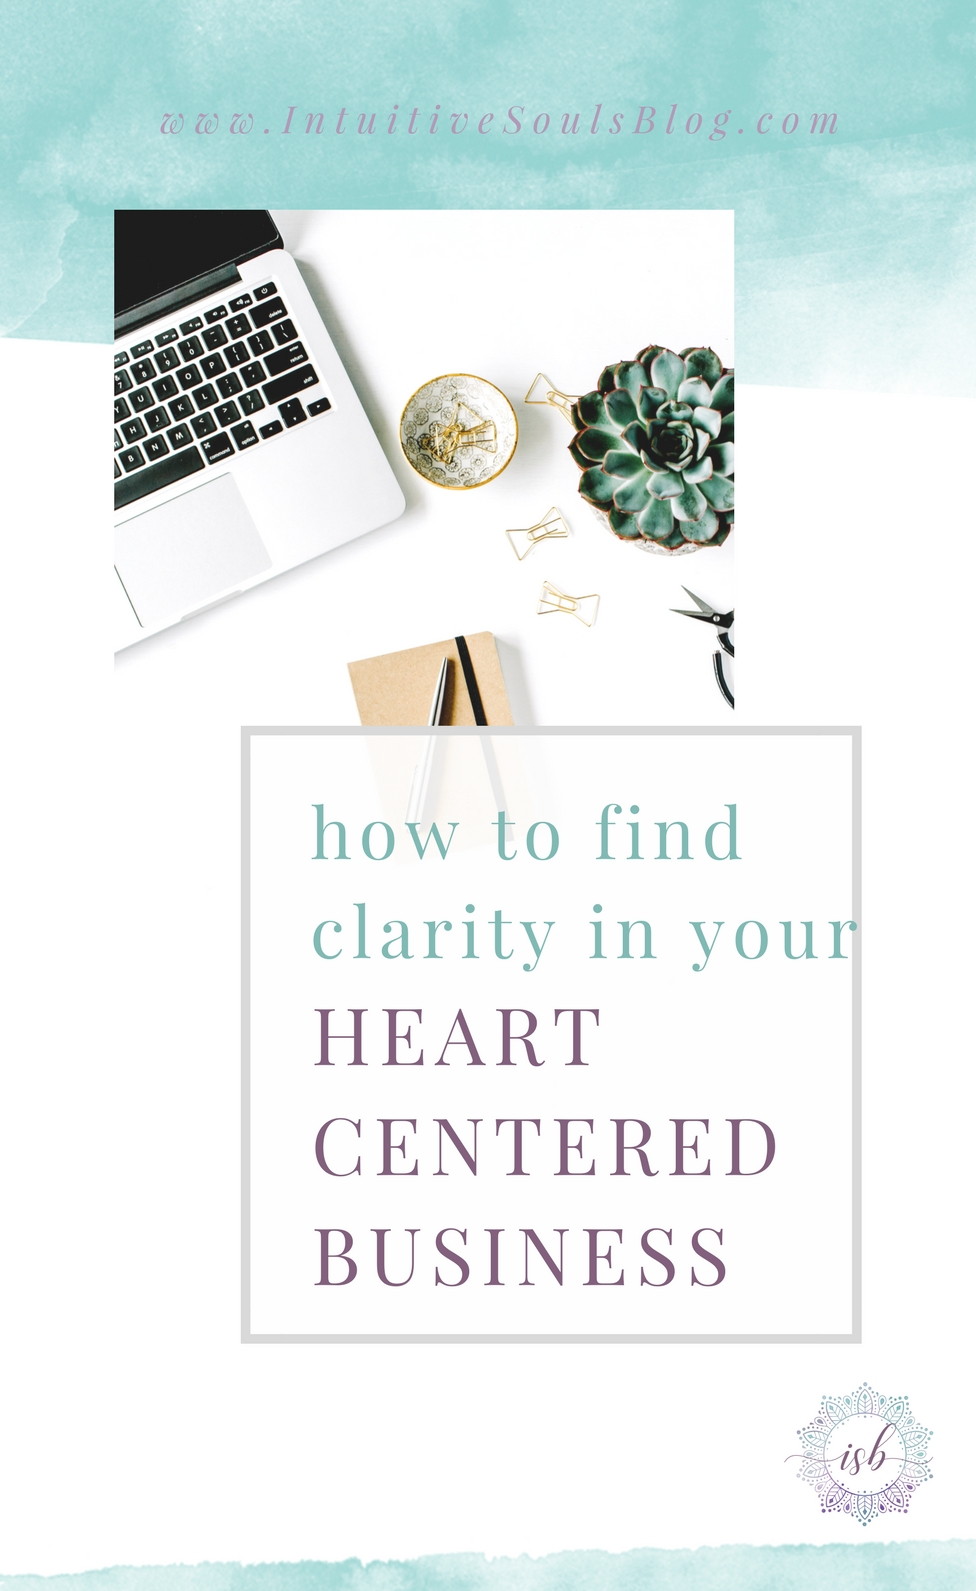 Here's how to find clarity, stay focused, and know which coaches to spend money on (and which not to!) in your heart centered business using meditation.